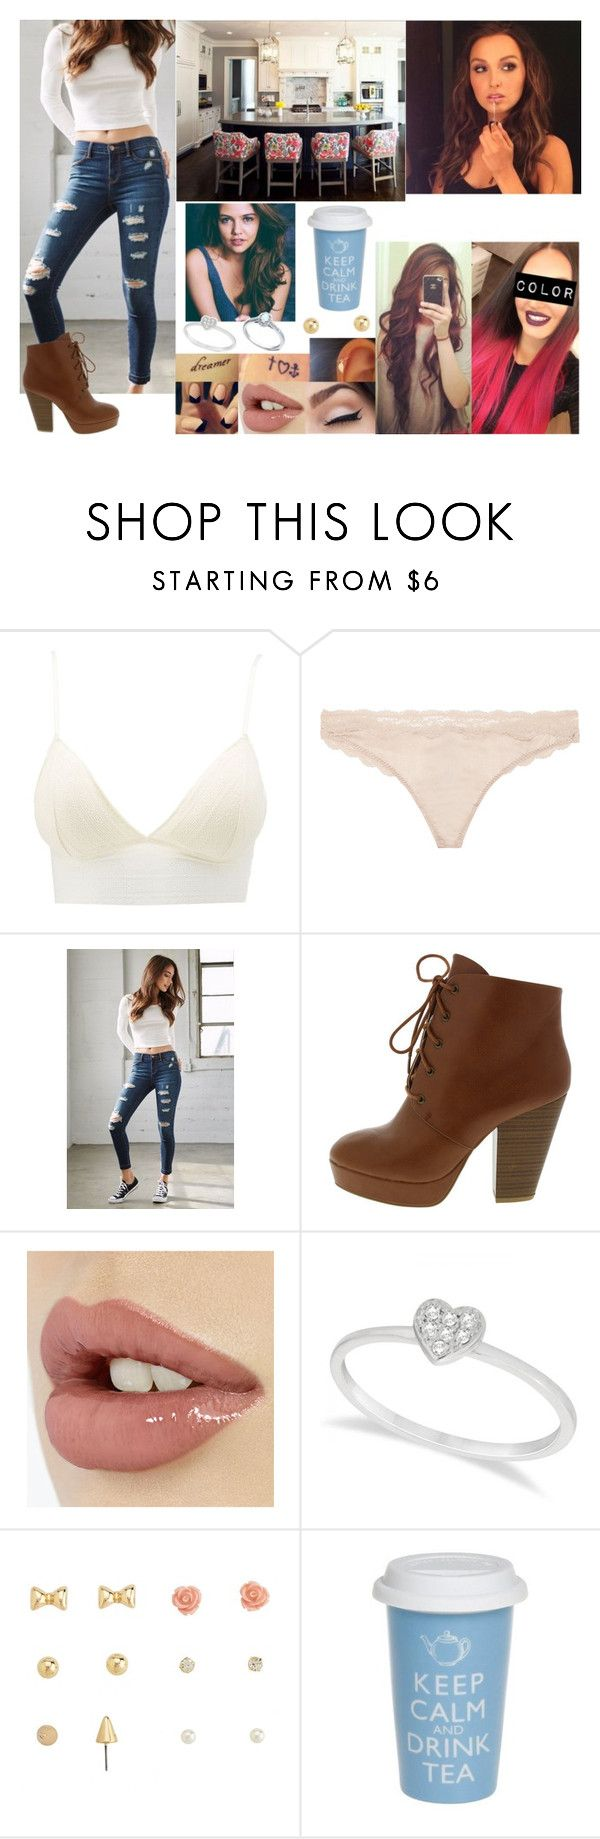 """""""Going Through Applications"""" by samanthanicole39 ❤ liked on Polyvore featuring Charlotte Russe, STELLA McCARTNEY, Bullhead Denim Co. and Allurez"""